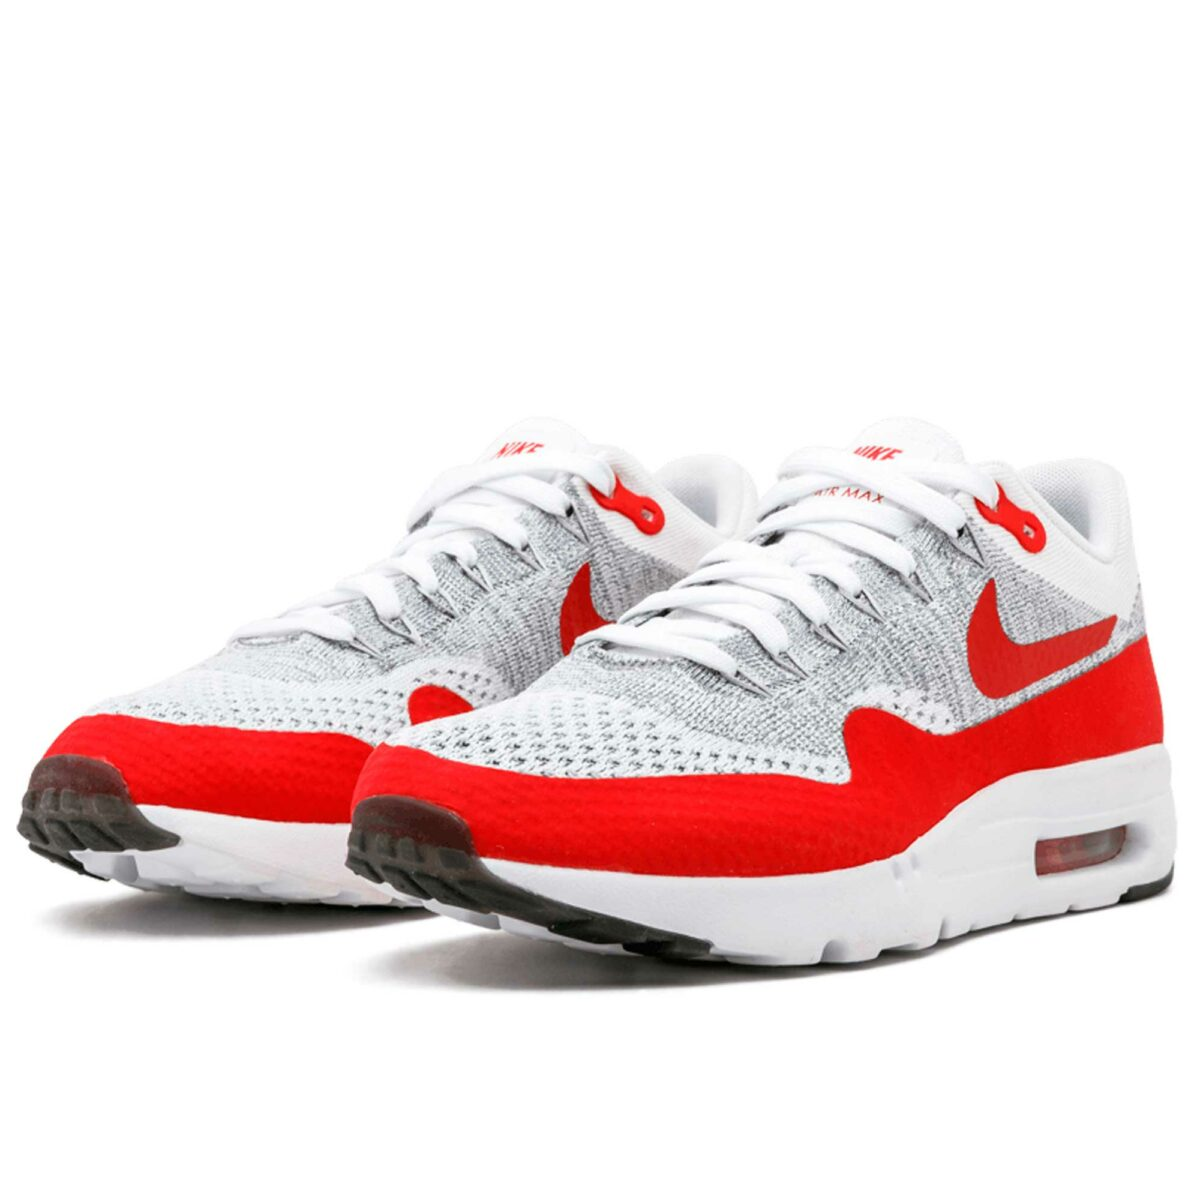 nike air max 1 87 ultra flyknit white red 843384 101 купить